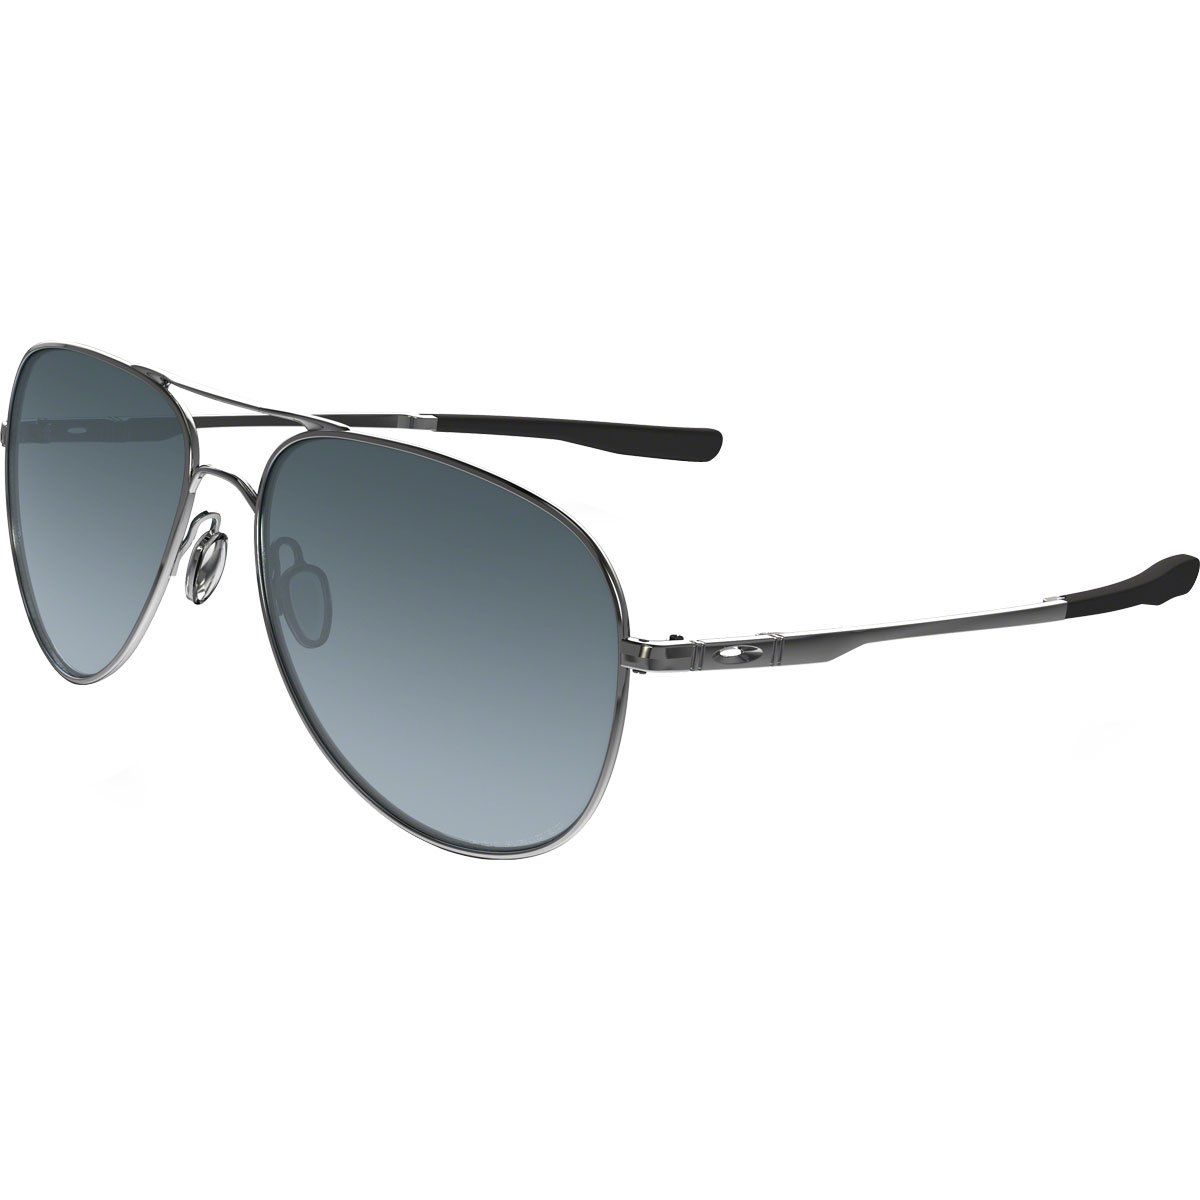 a0c13551a75d9 Galleon - Oakley Men s Elmont Sunglasses